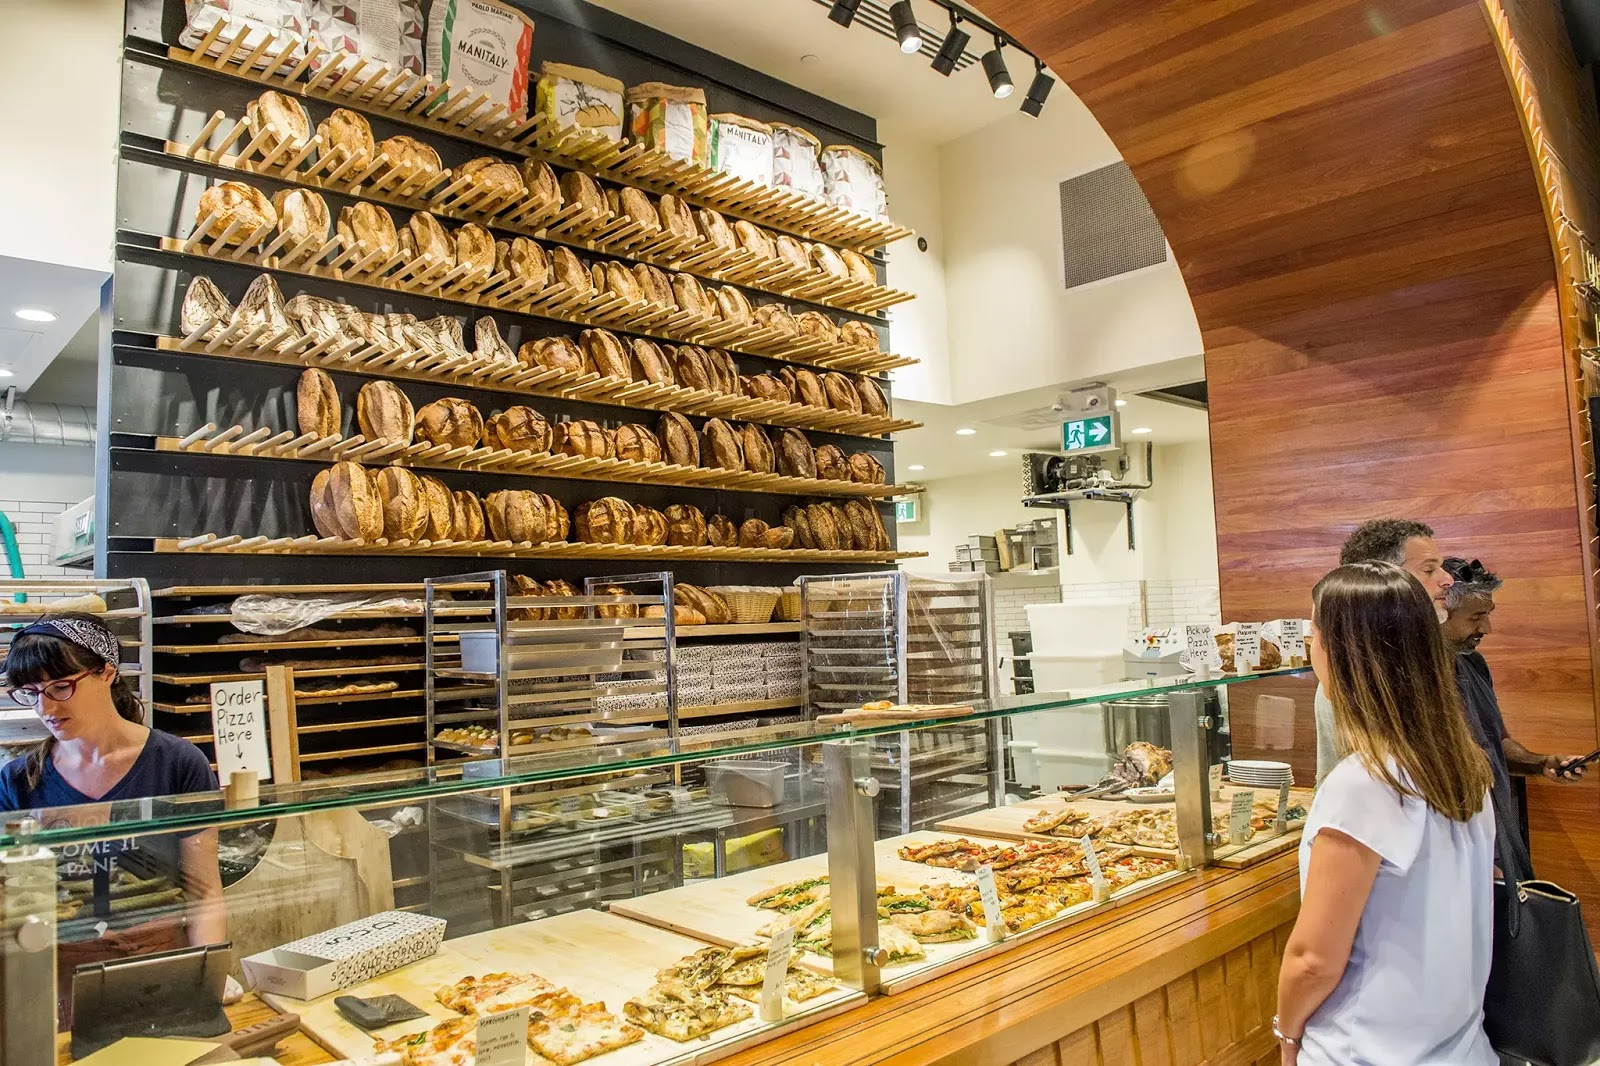 Brazil, Argentina, and Chile witnessing with the strongest growth in the  South America Bakery Market